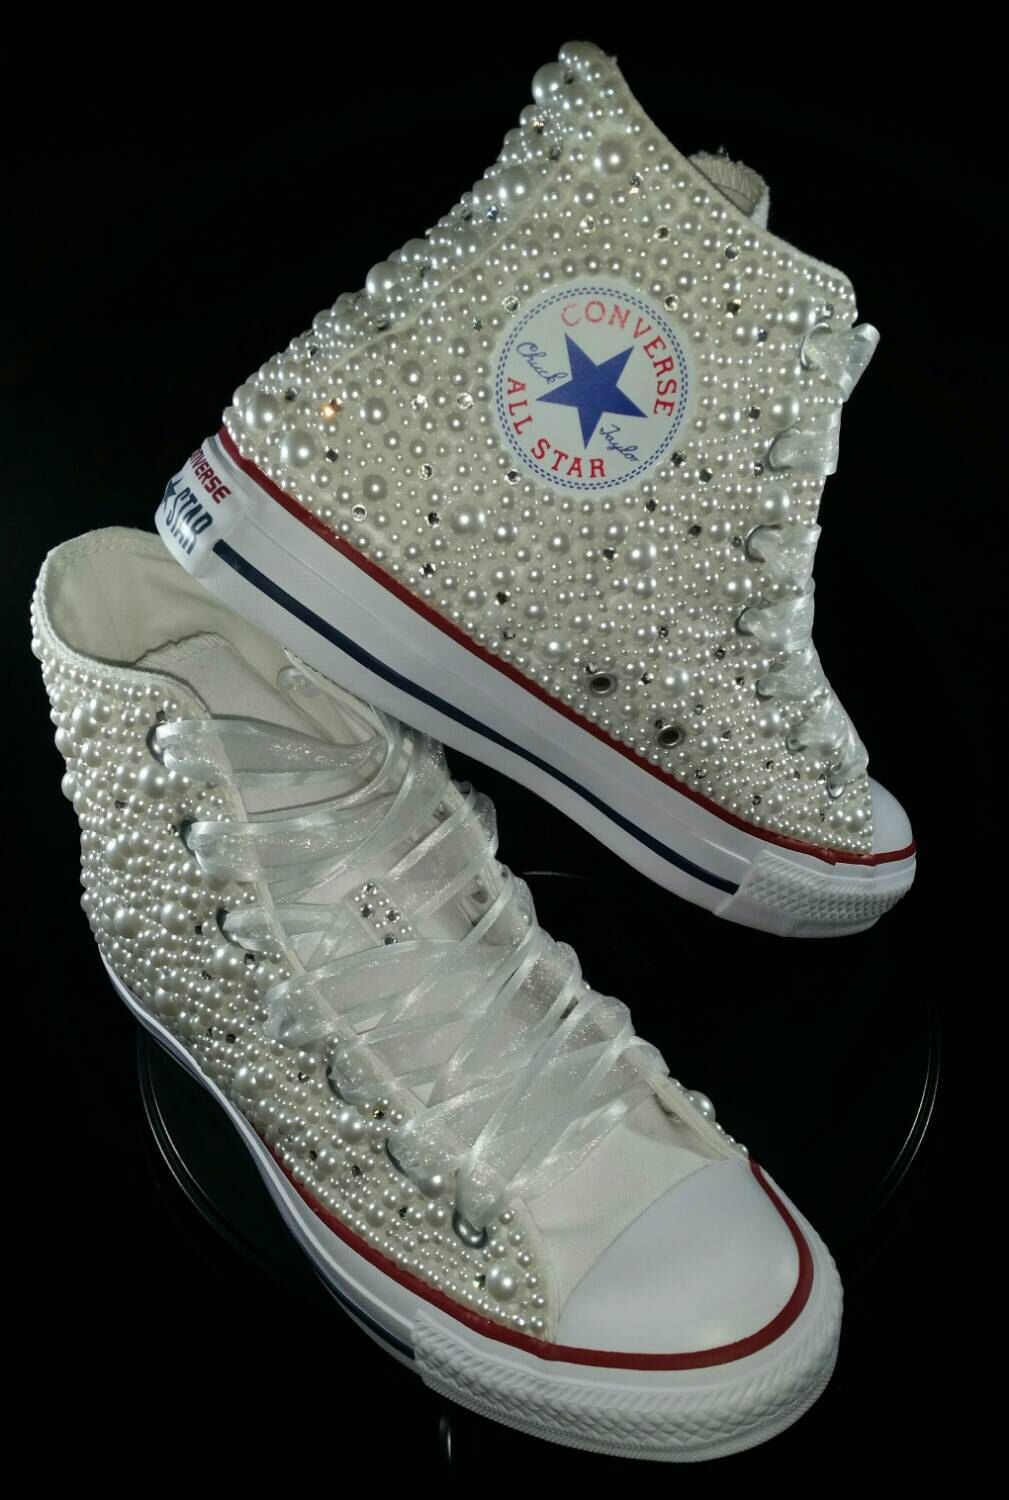 e897476f7e37 ... where to buy bridal converse wedding converse bling pearls custom  converse sneakers personalized chuck taylors all